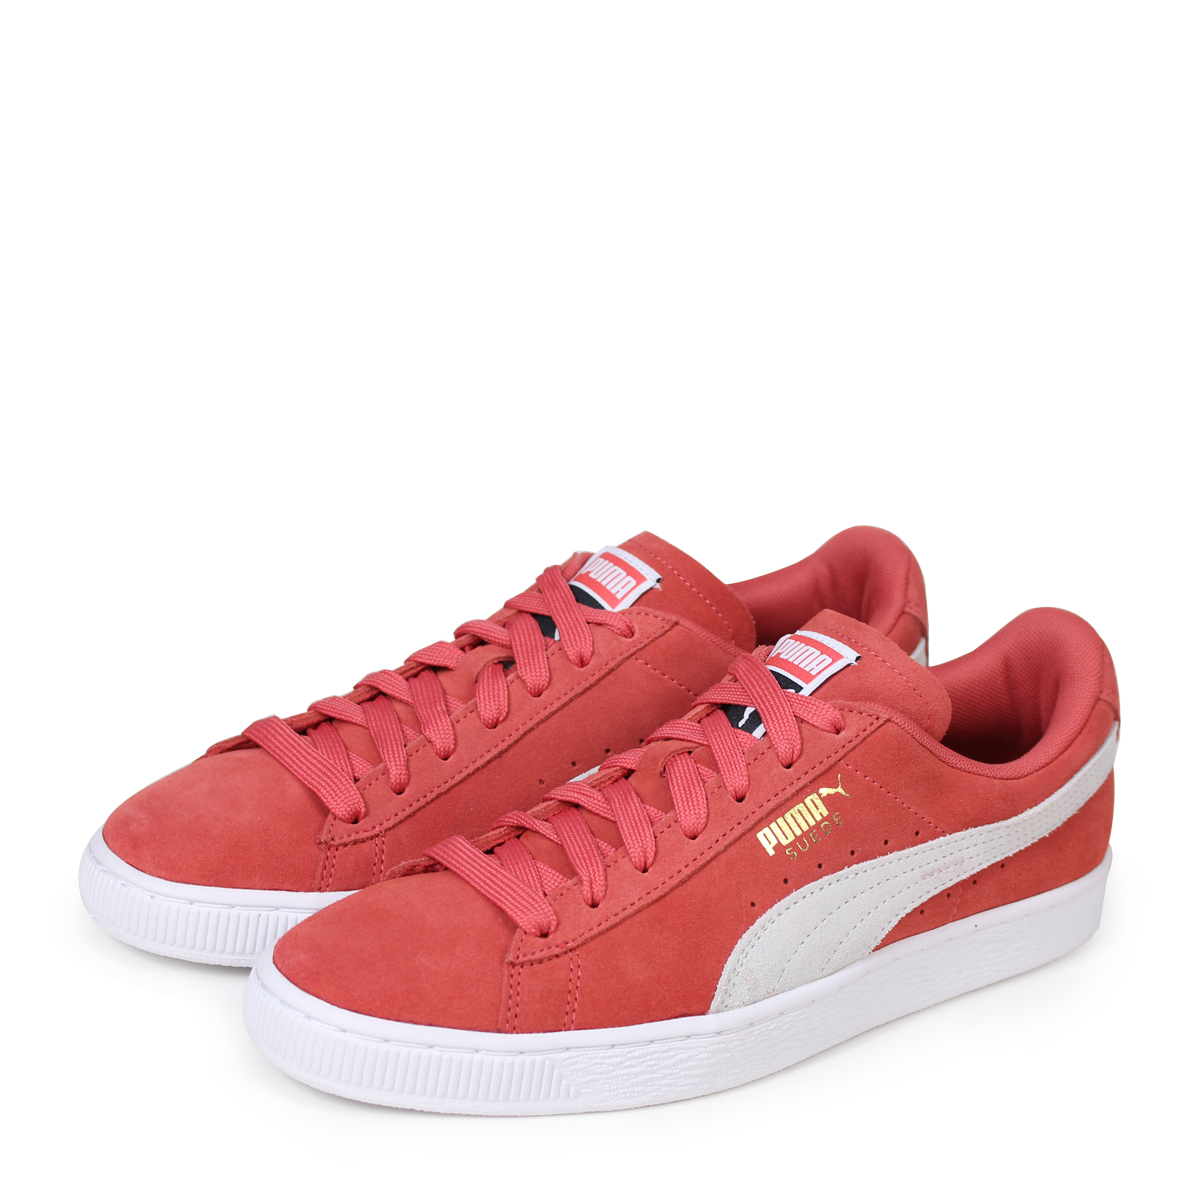 new products e017b d591d PUMA WMNS SUEDE CLASSIC 355,462-60 Puma suede classical music sneakers men  pink [184]